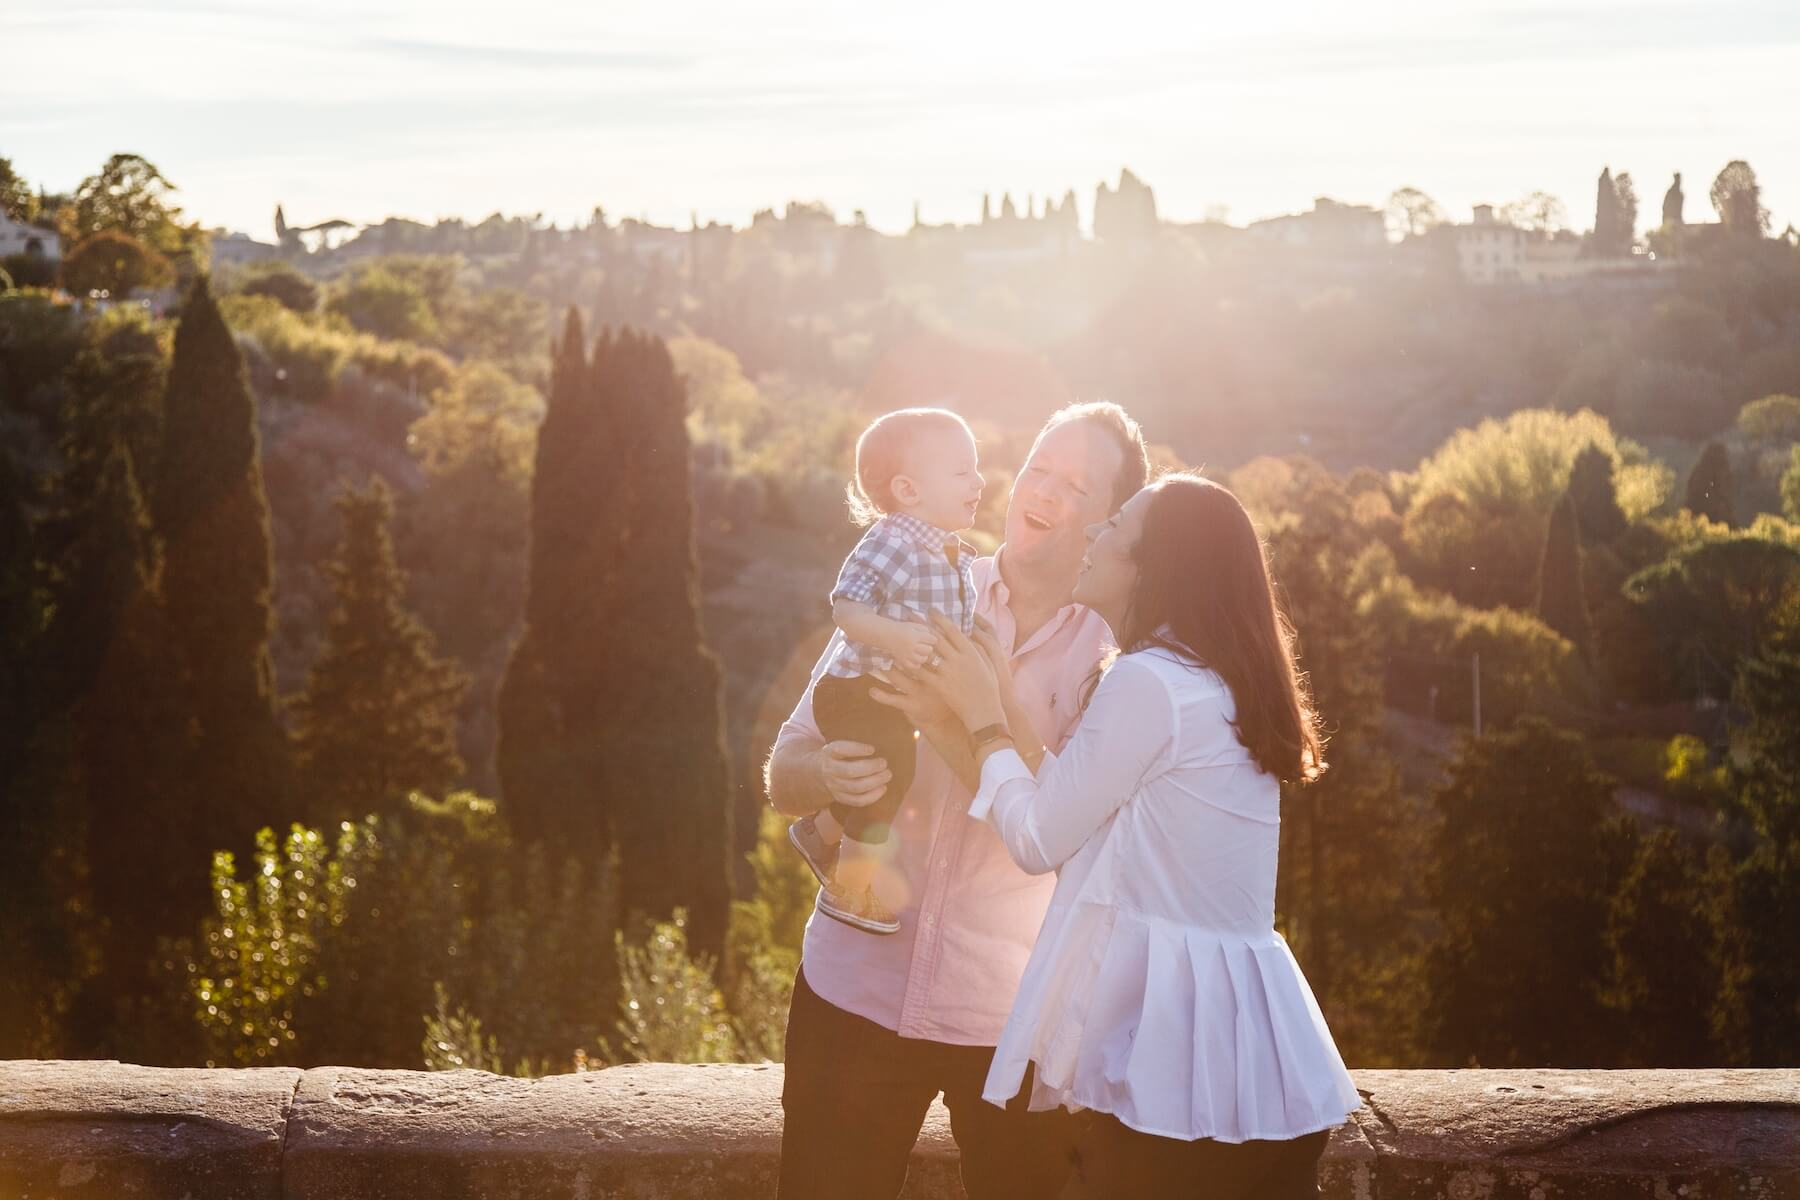 Father and mother holding infant son, all smiling together on a family trip in Florence, Italy